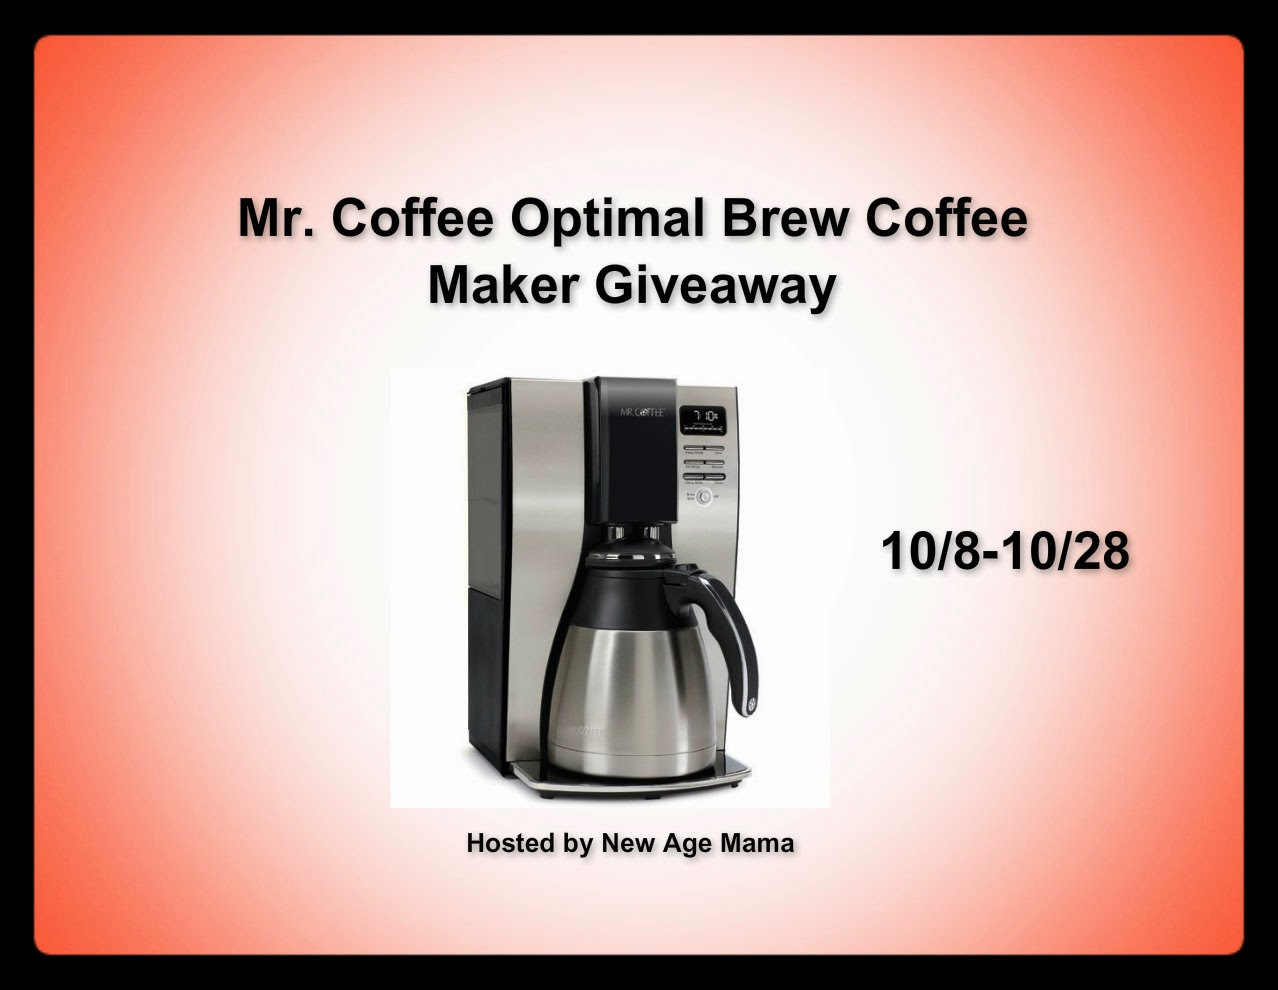 New Age Mama: Mr. Coffee Optimal Brew Coffee Maker - Review & #Giveaway